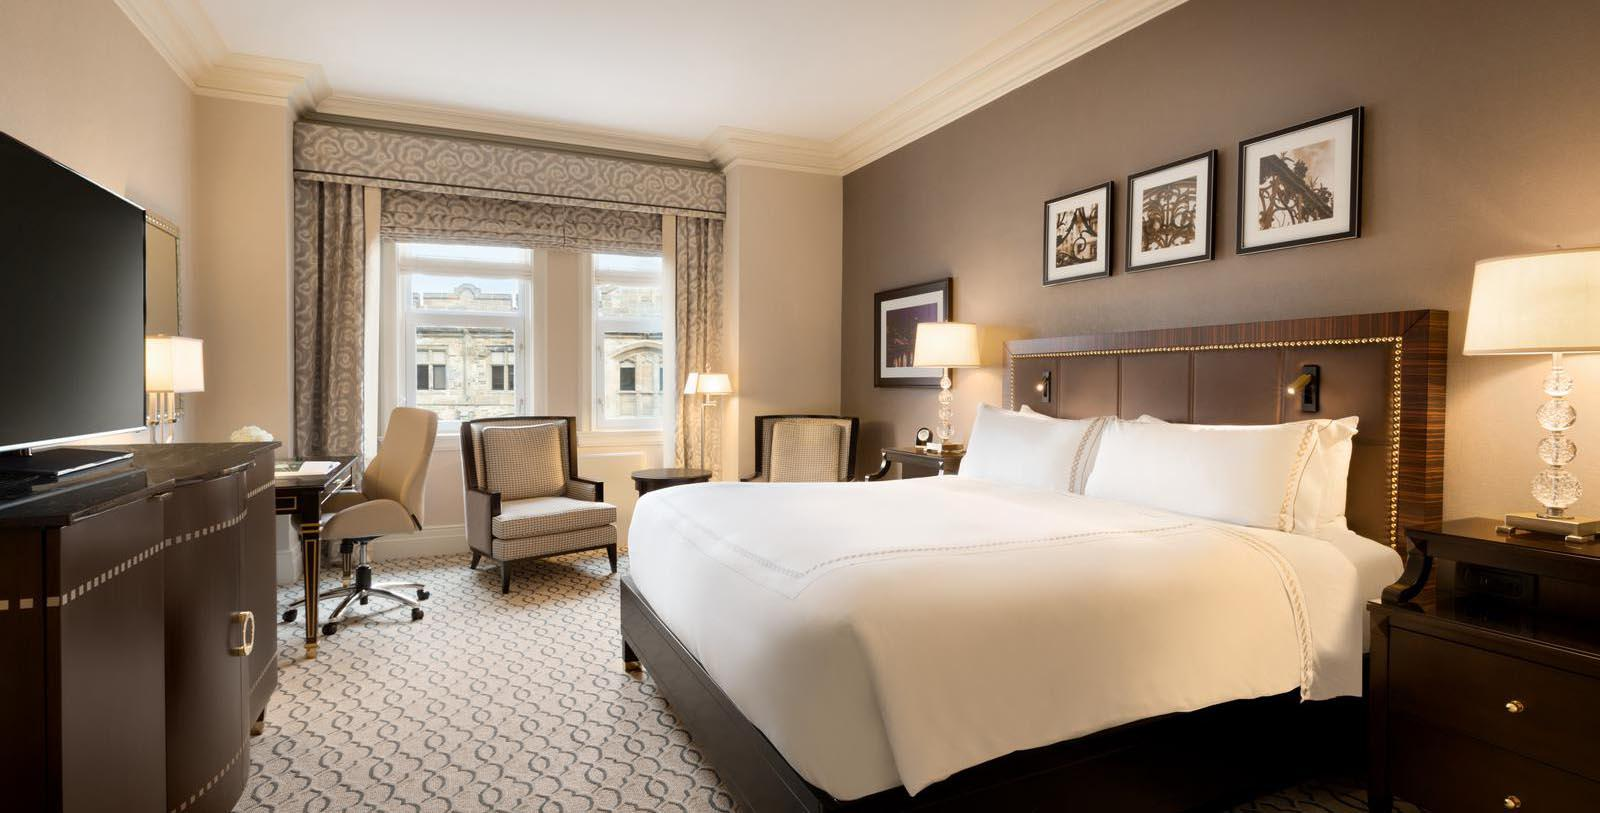 Image of guestroom Fairmont Château Laurier, 1912, Member of Historic Hotels Worldwide, in Ottowa, Canada, Explore